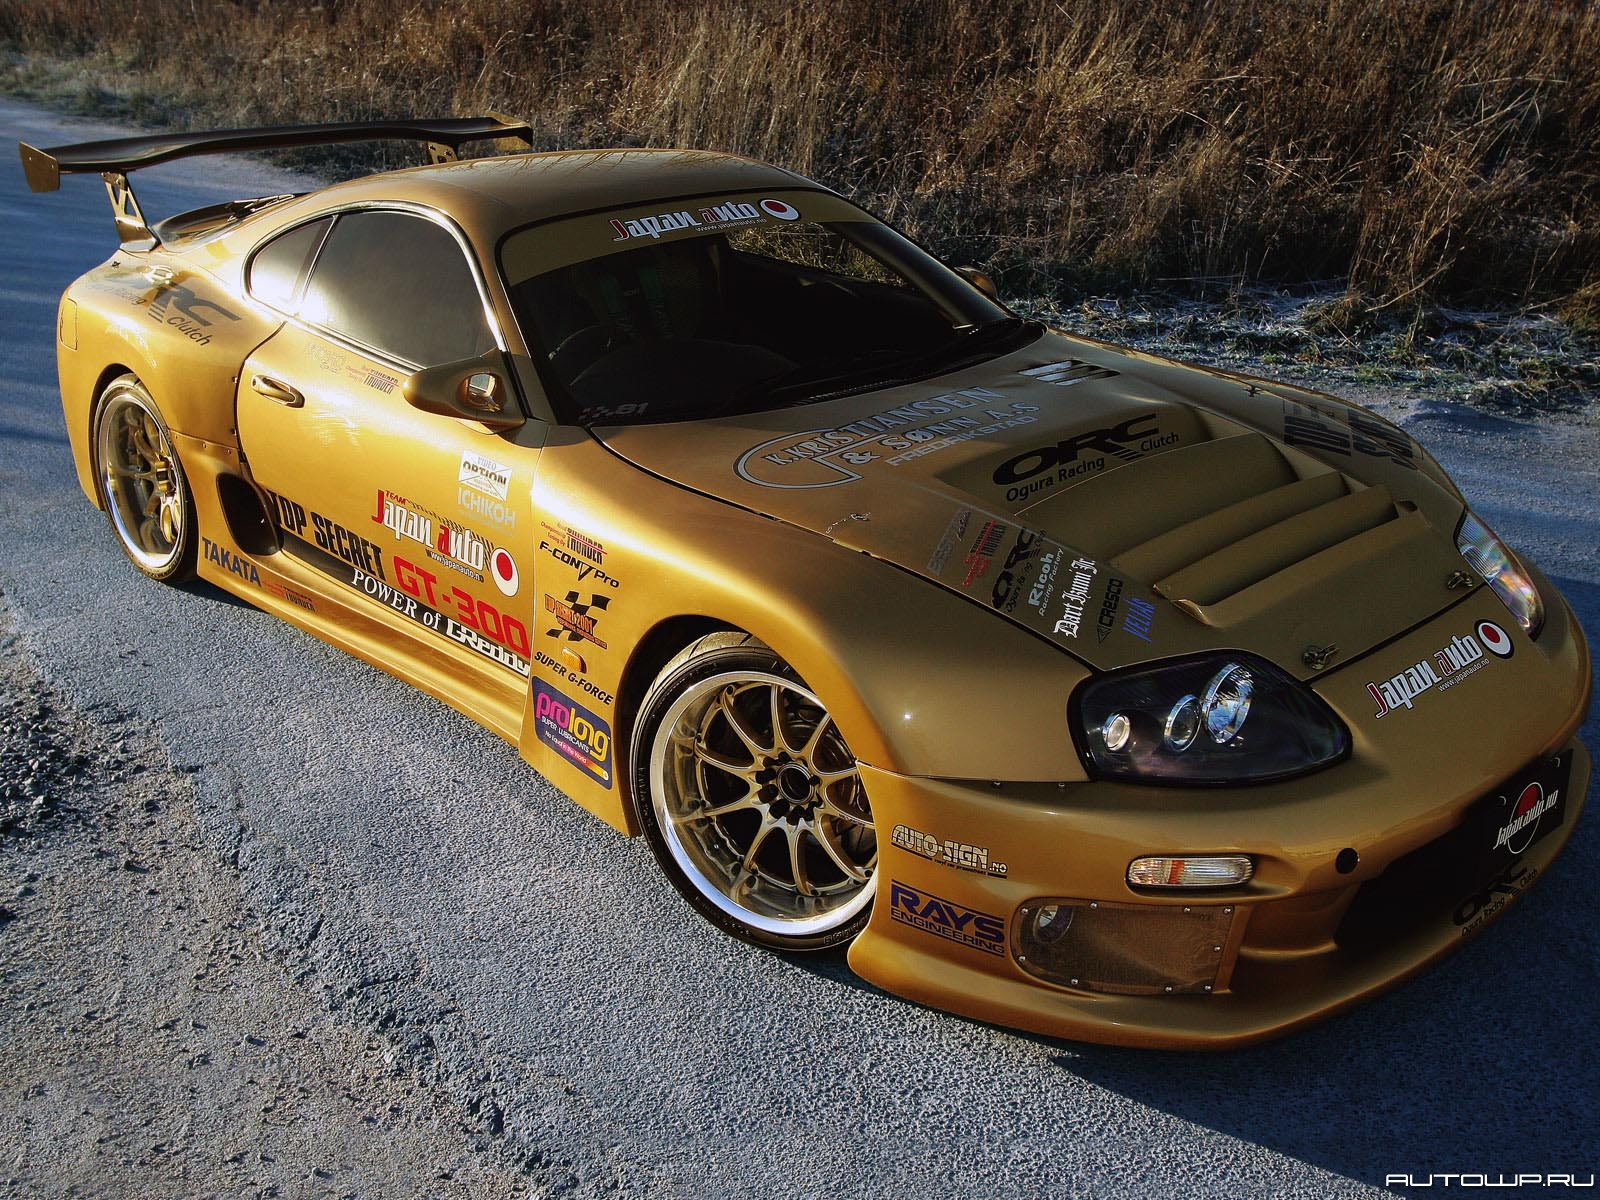 Toyota Supra (tuning) photos - PhotoGallery with 12 pics ...